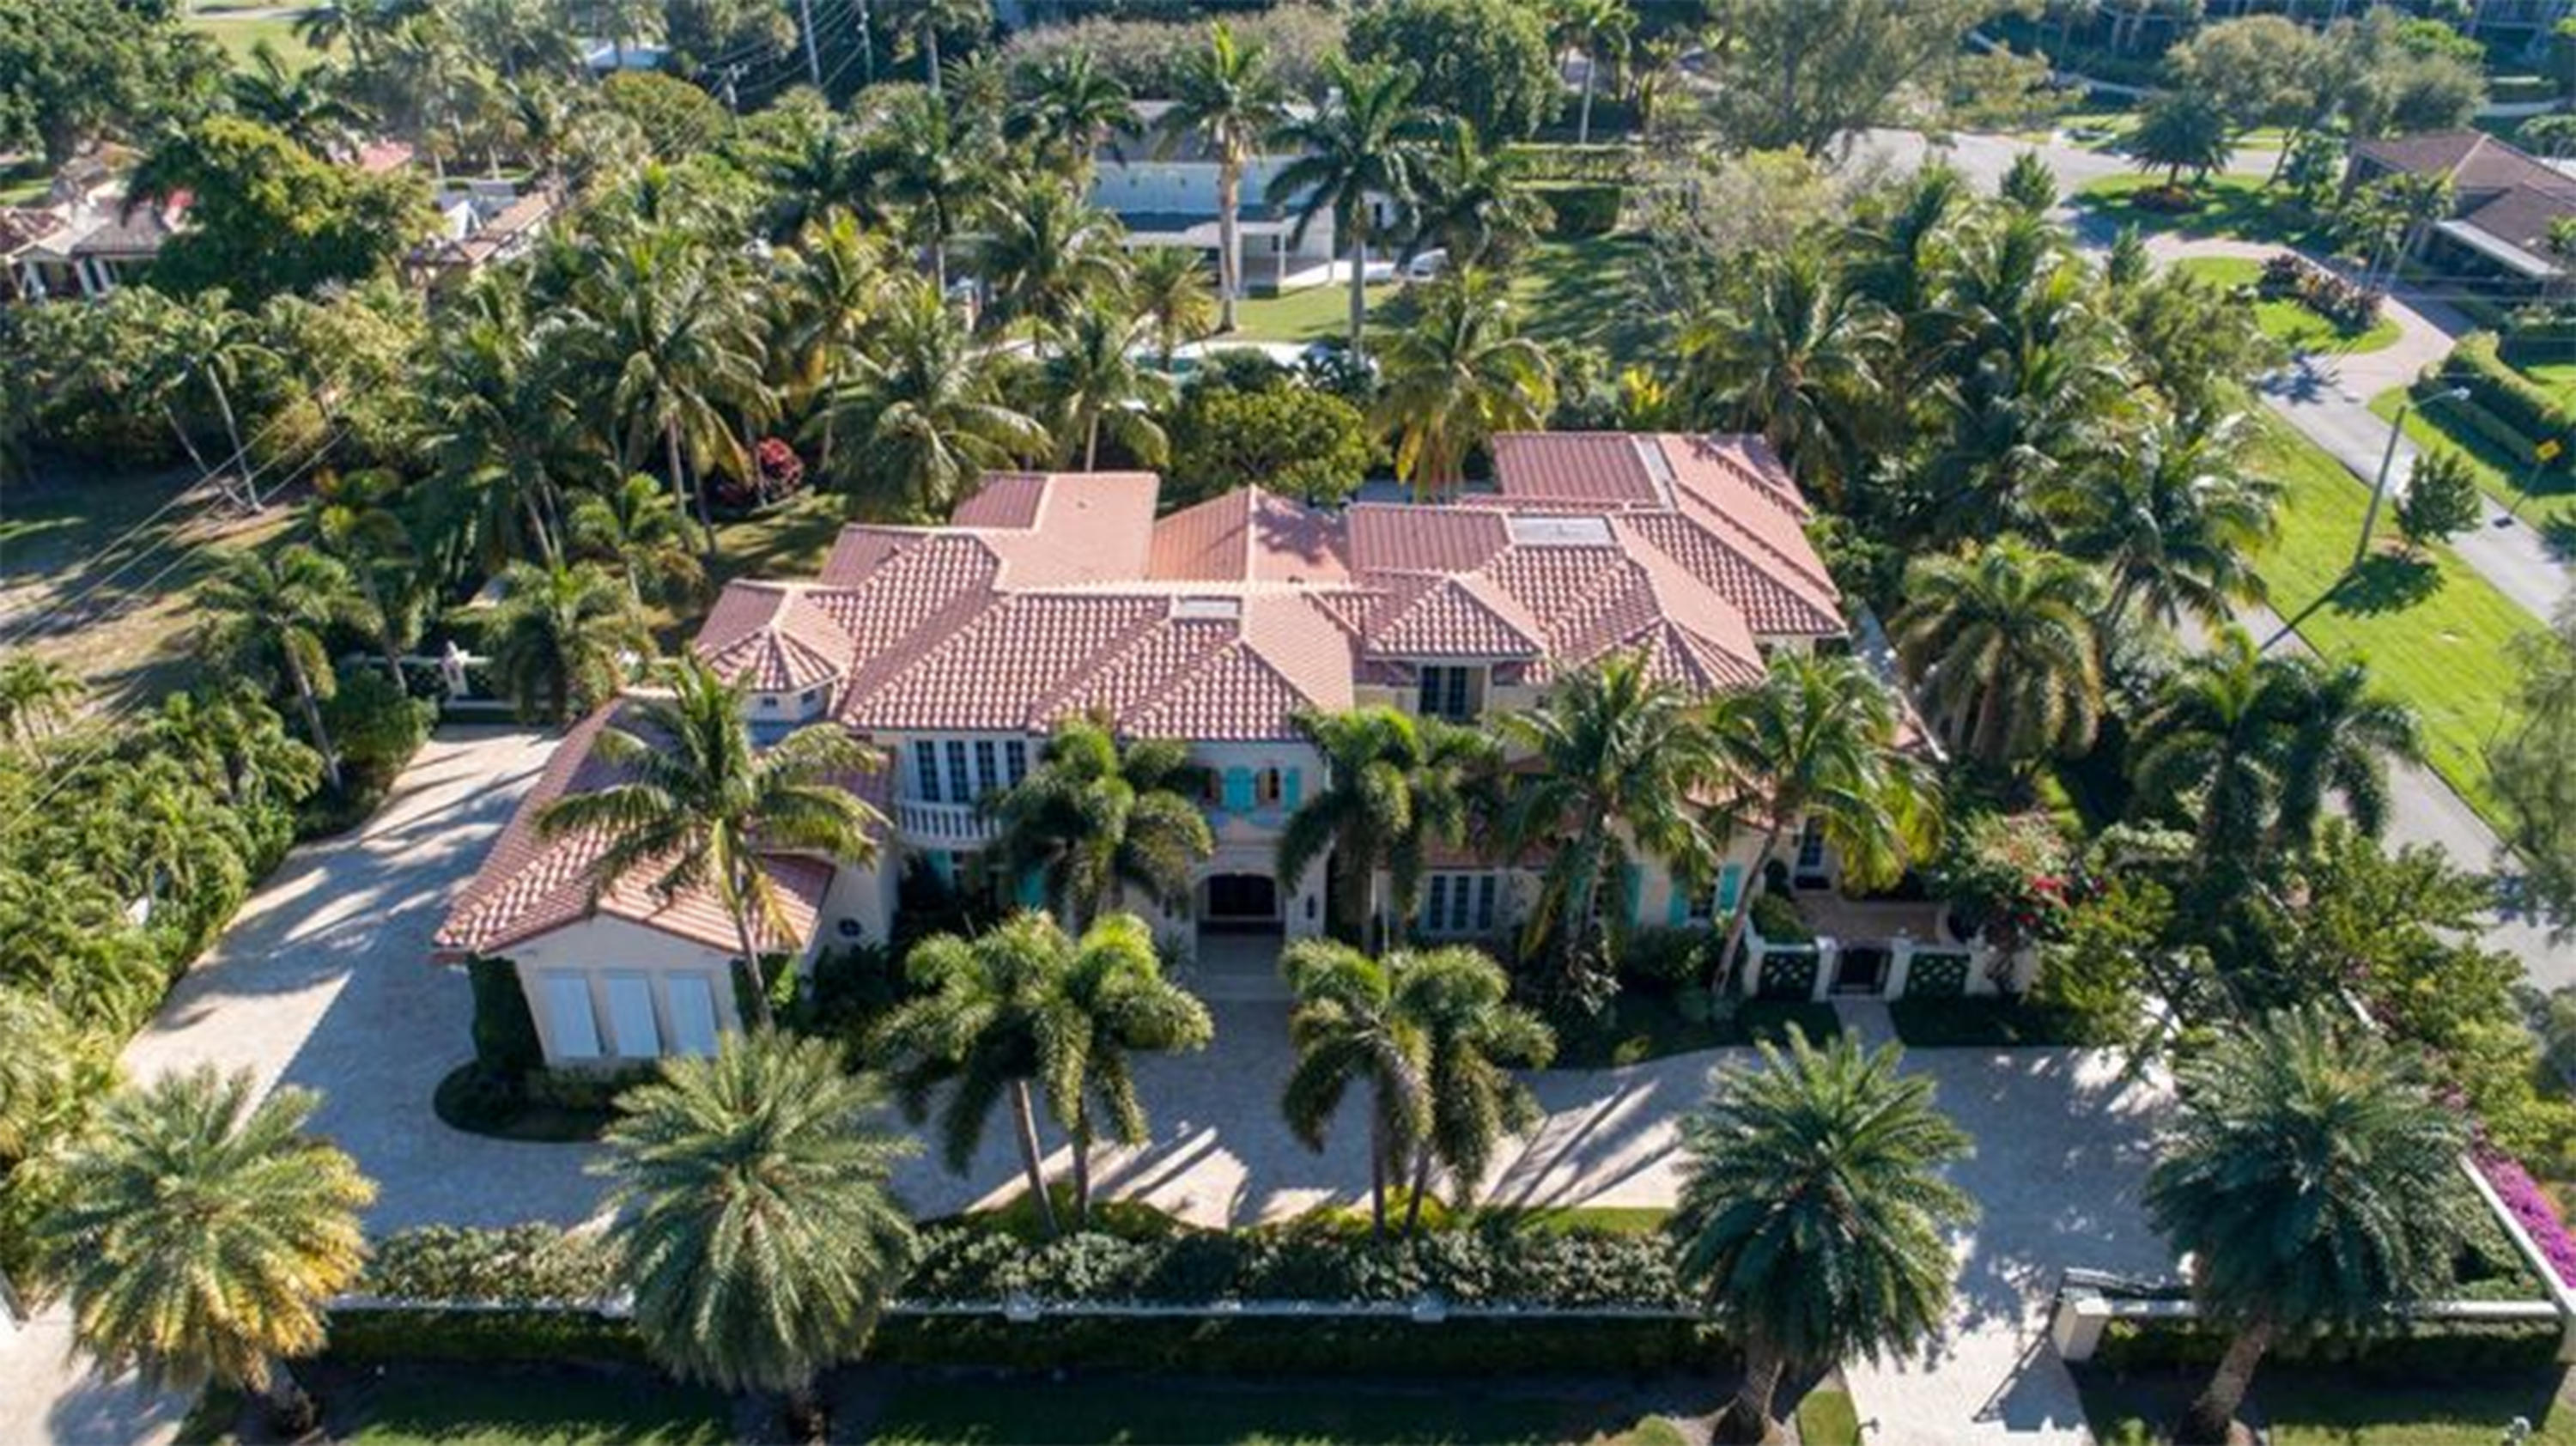 1298 Cocoanut Road, Boca Raton, Florida 33432, 5 Bedrooms Bedrooms, ,5.2 BathroomsBathrooms,Single Family,For Sale,The Estate Section,Cocoanut,RX-10486759